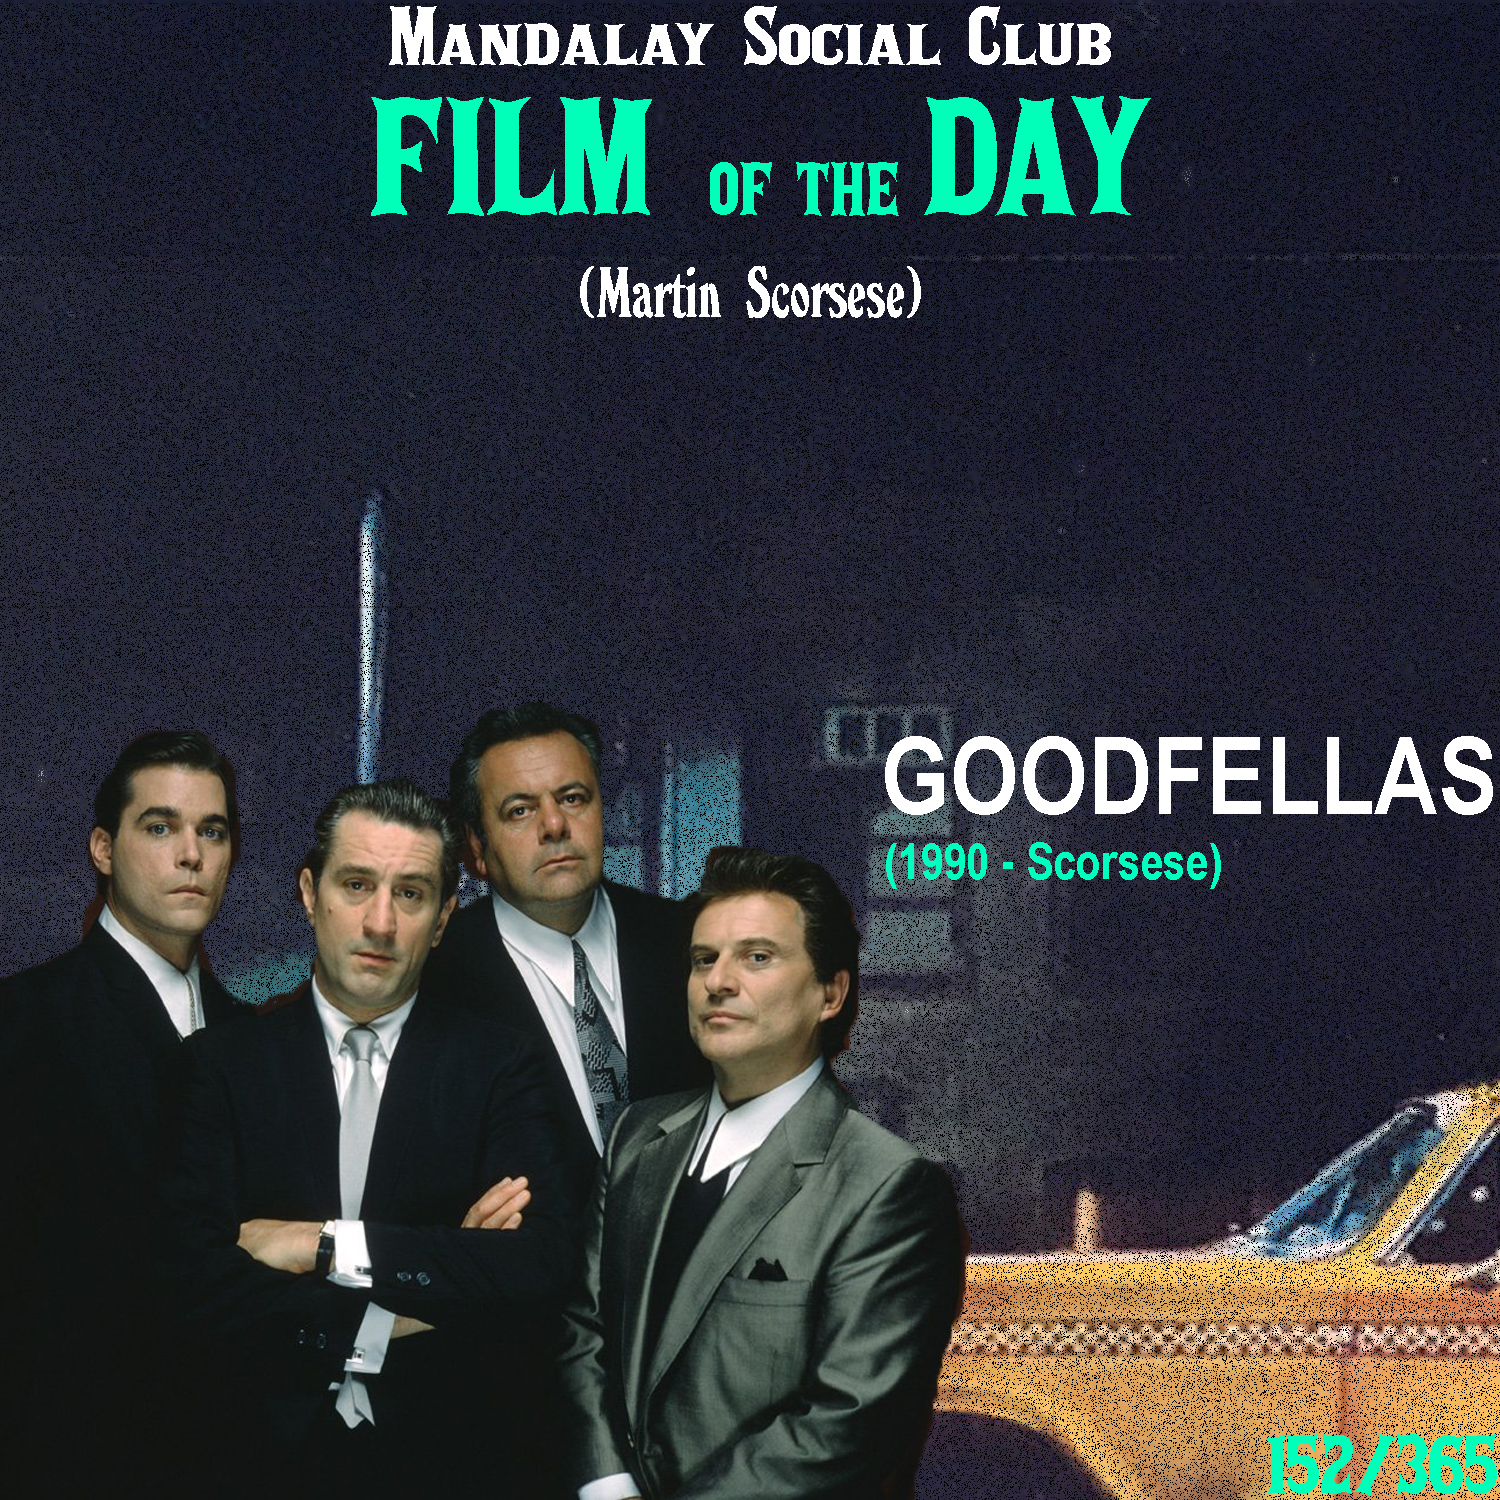 GOODFELLAS     (dir. Martin Scorsese)   Not only did Scorsese have one of the biggest films in the 70's and 80's with  Taxi Driver  and  Raging Bull  respectively, but he also kicked off the 90s with one of the most iconic and beloved films in his filmography.   Goodfellas  hosts an all-star cast of Scorsese favorites with Robert DeNiro and Joe Pesci while also introducing Ray Liotta as the lead character. Liotta stars as Henry Hill, a gangster who starts finding himself in more and more trouble, the longer he stays involved in the mob. On top of that, he begins to pick up a nasty coke addiction, which results in the final nail in the coffin for Henry.  Unlike many other gangster films,  Goodfellas  perhaps does the best job of showing the actual inner workings of the mob. With classic Scorsese style, Marty is able to depict t the actual hard-working ethic of these mobsters in a way that doesn't slowly glamorize the riches like some of his counterparts.  Goodfellas  not only paints the picture that gangsters at the end of the day are CRIMINALS, but also shows just how important it is to make good decisions in life.    5/5     WATCH: iTunes (RENT), Putlocker (FREE)